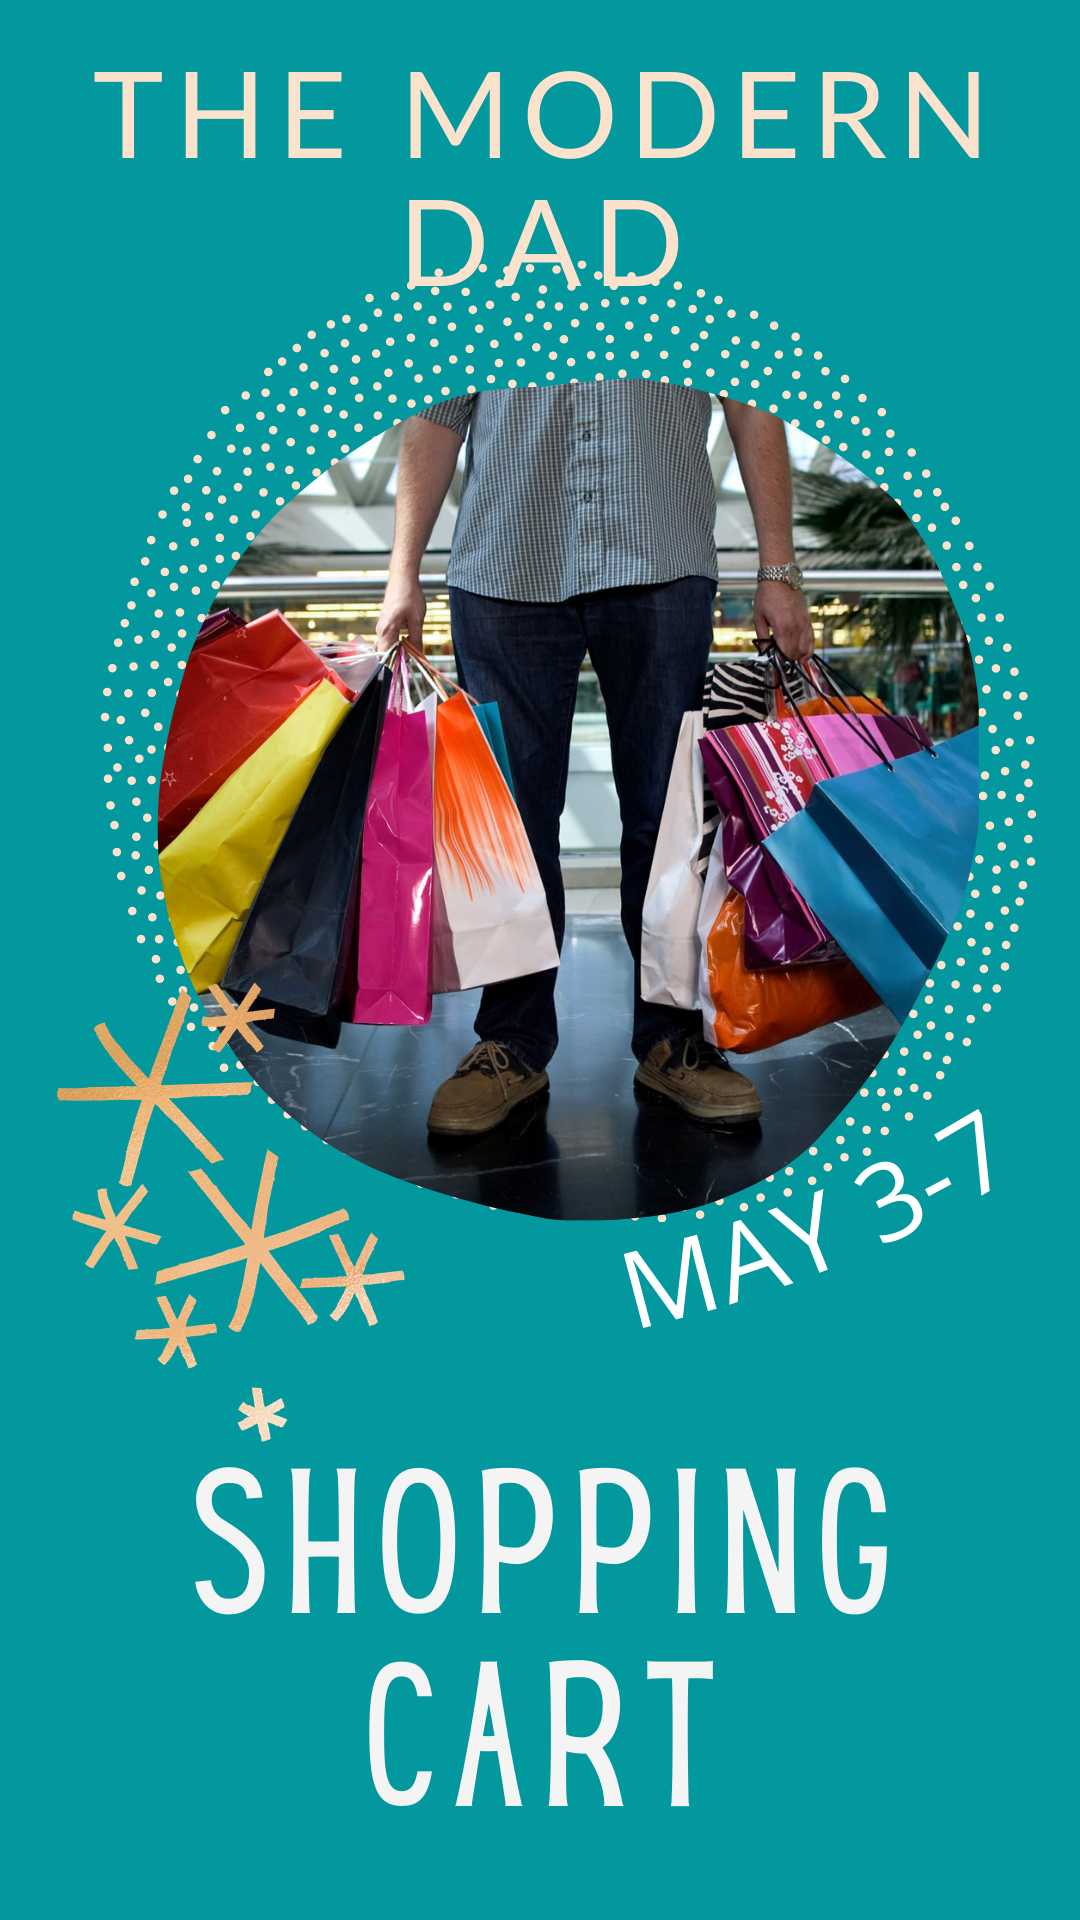 The Modern Dad Shopping Cart | May 3-7